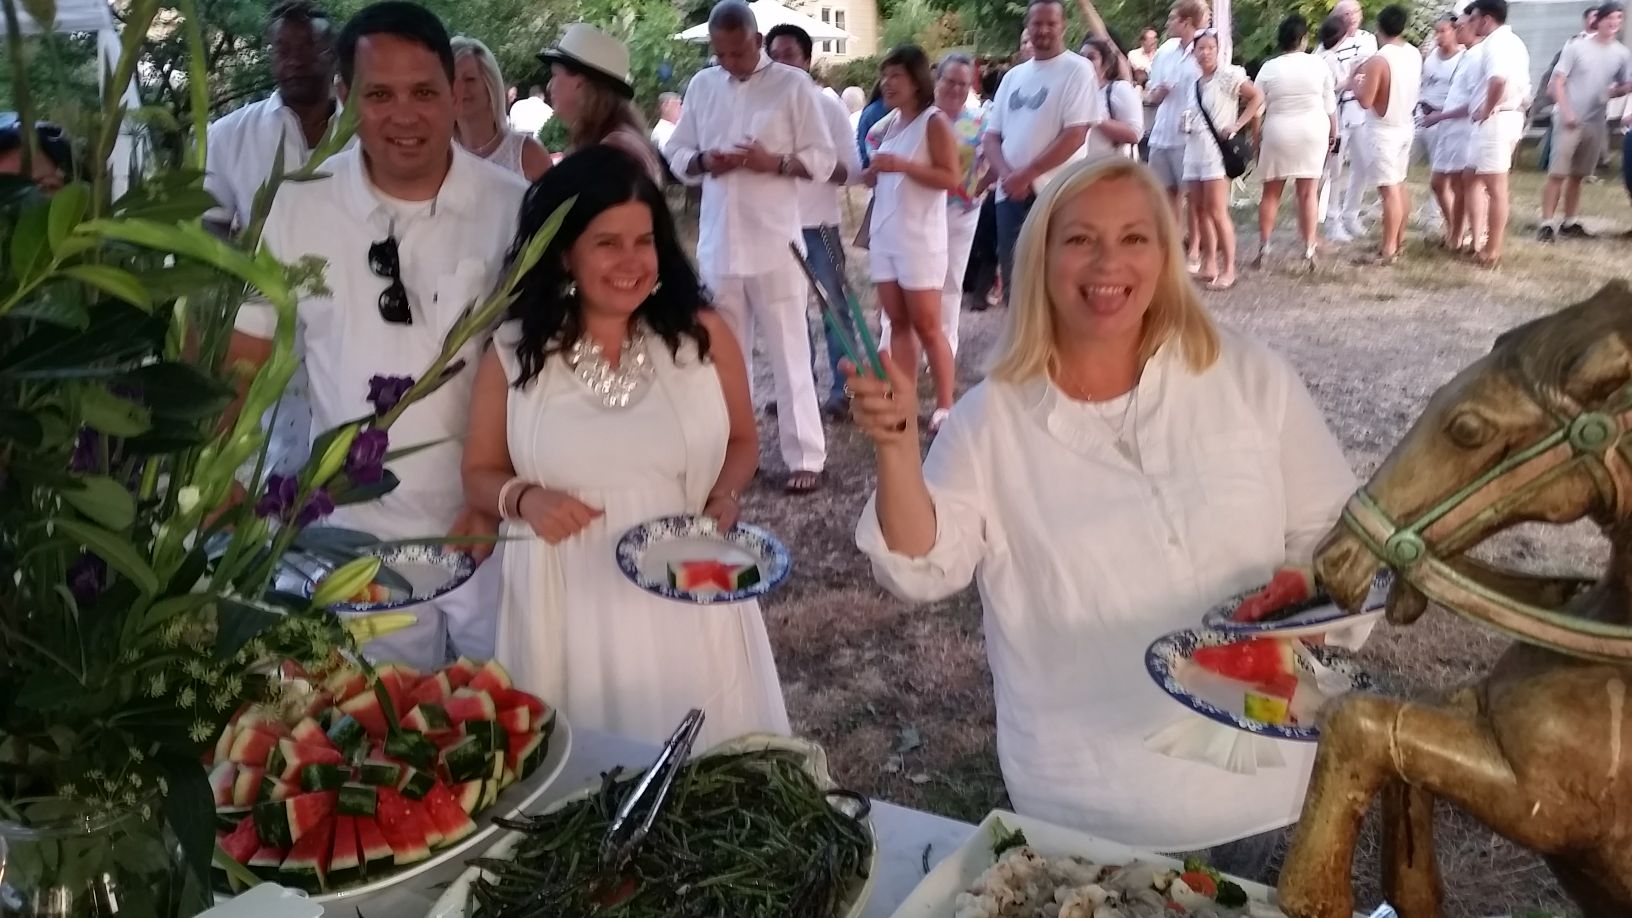 Annual White Party on the Farm - Summer 2017